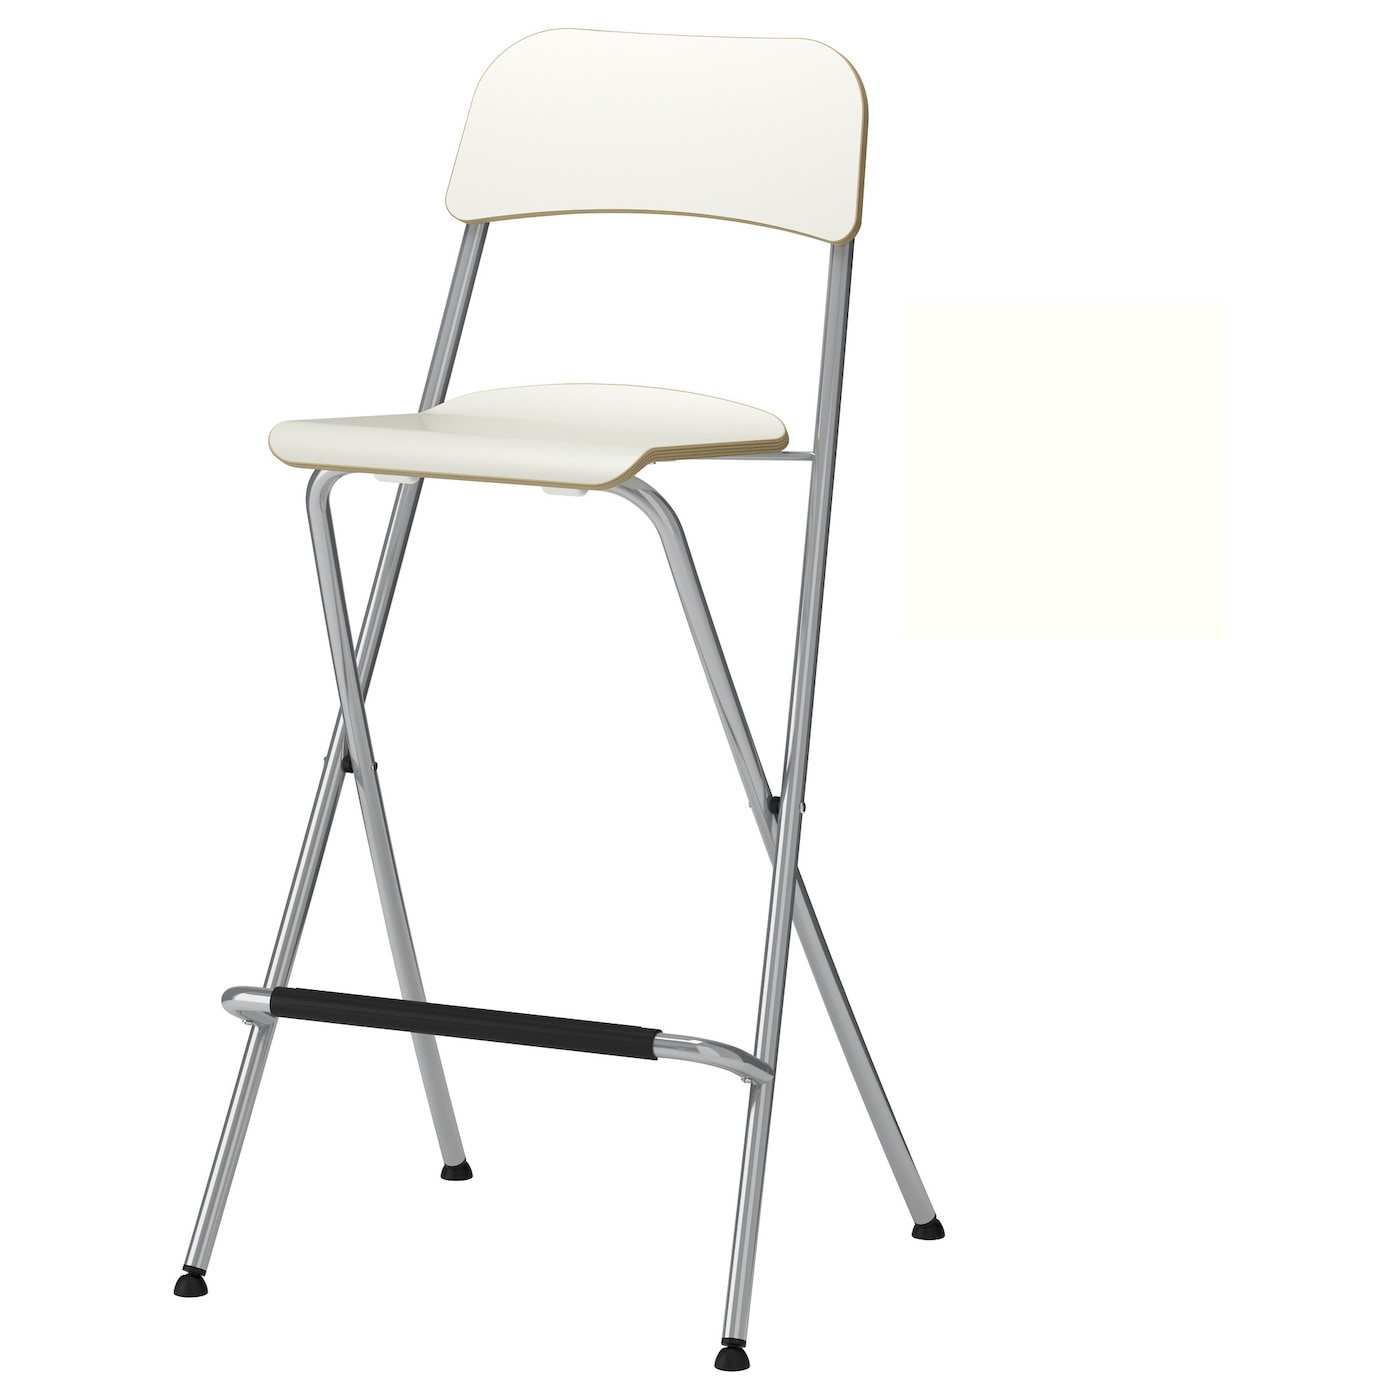 IKEA FRANKLIN bar stool with backrest foldable With footrest for relaxed sitting posture